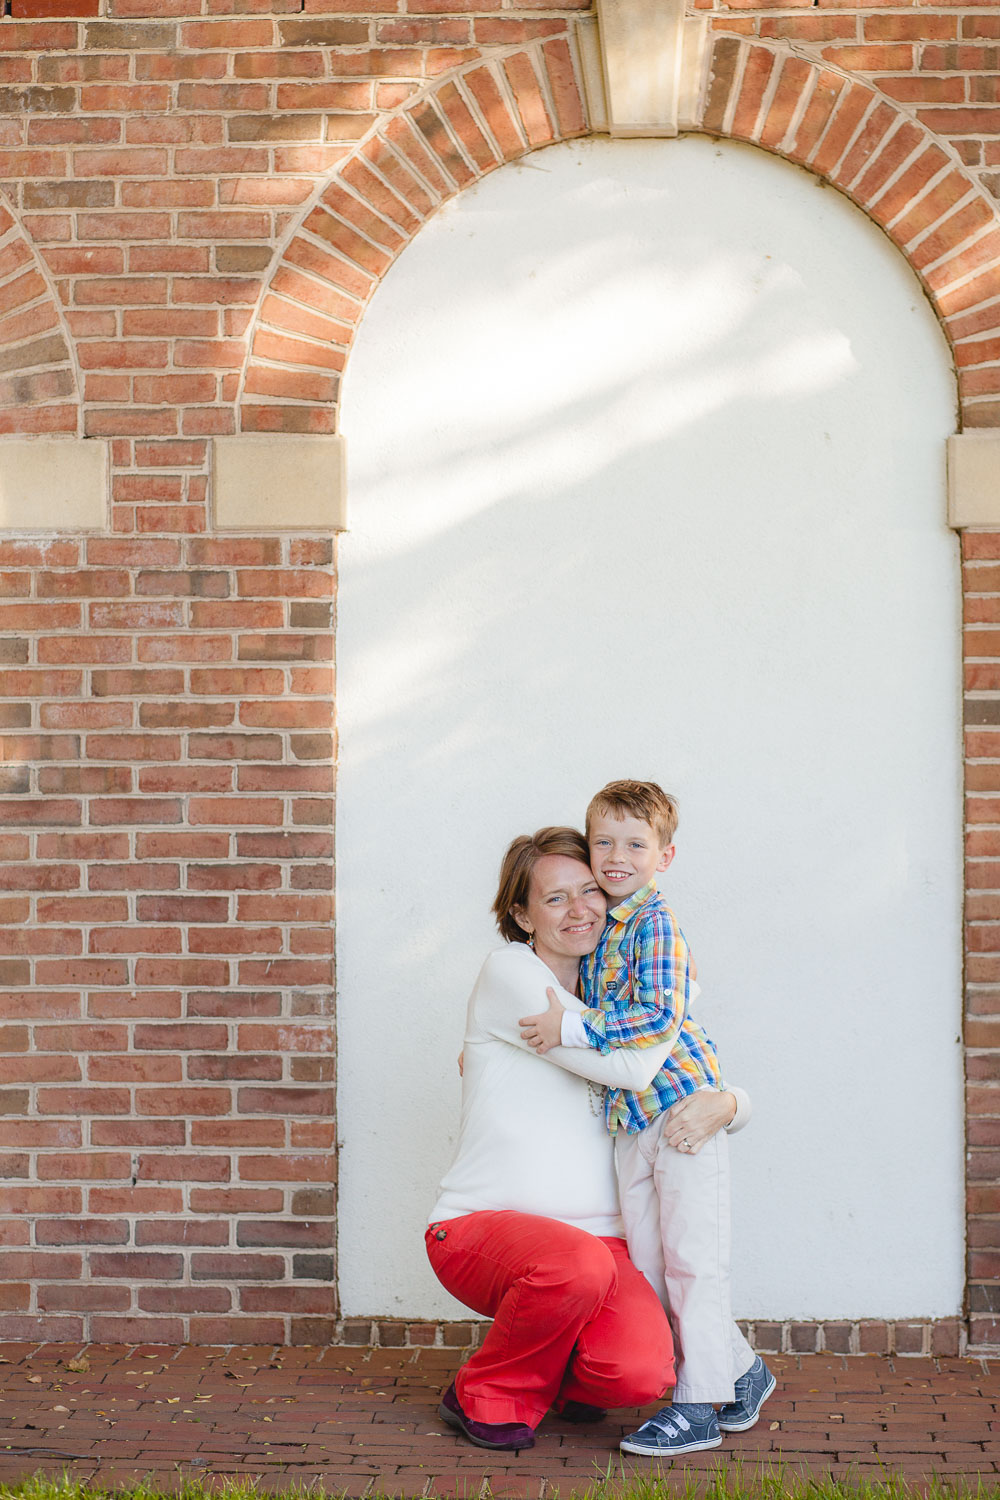 petruzzo-photography-family-at-windmill-hill-park-in-old-town-alexandria-09